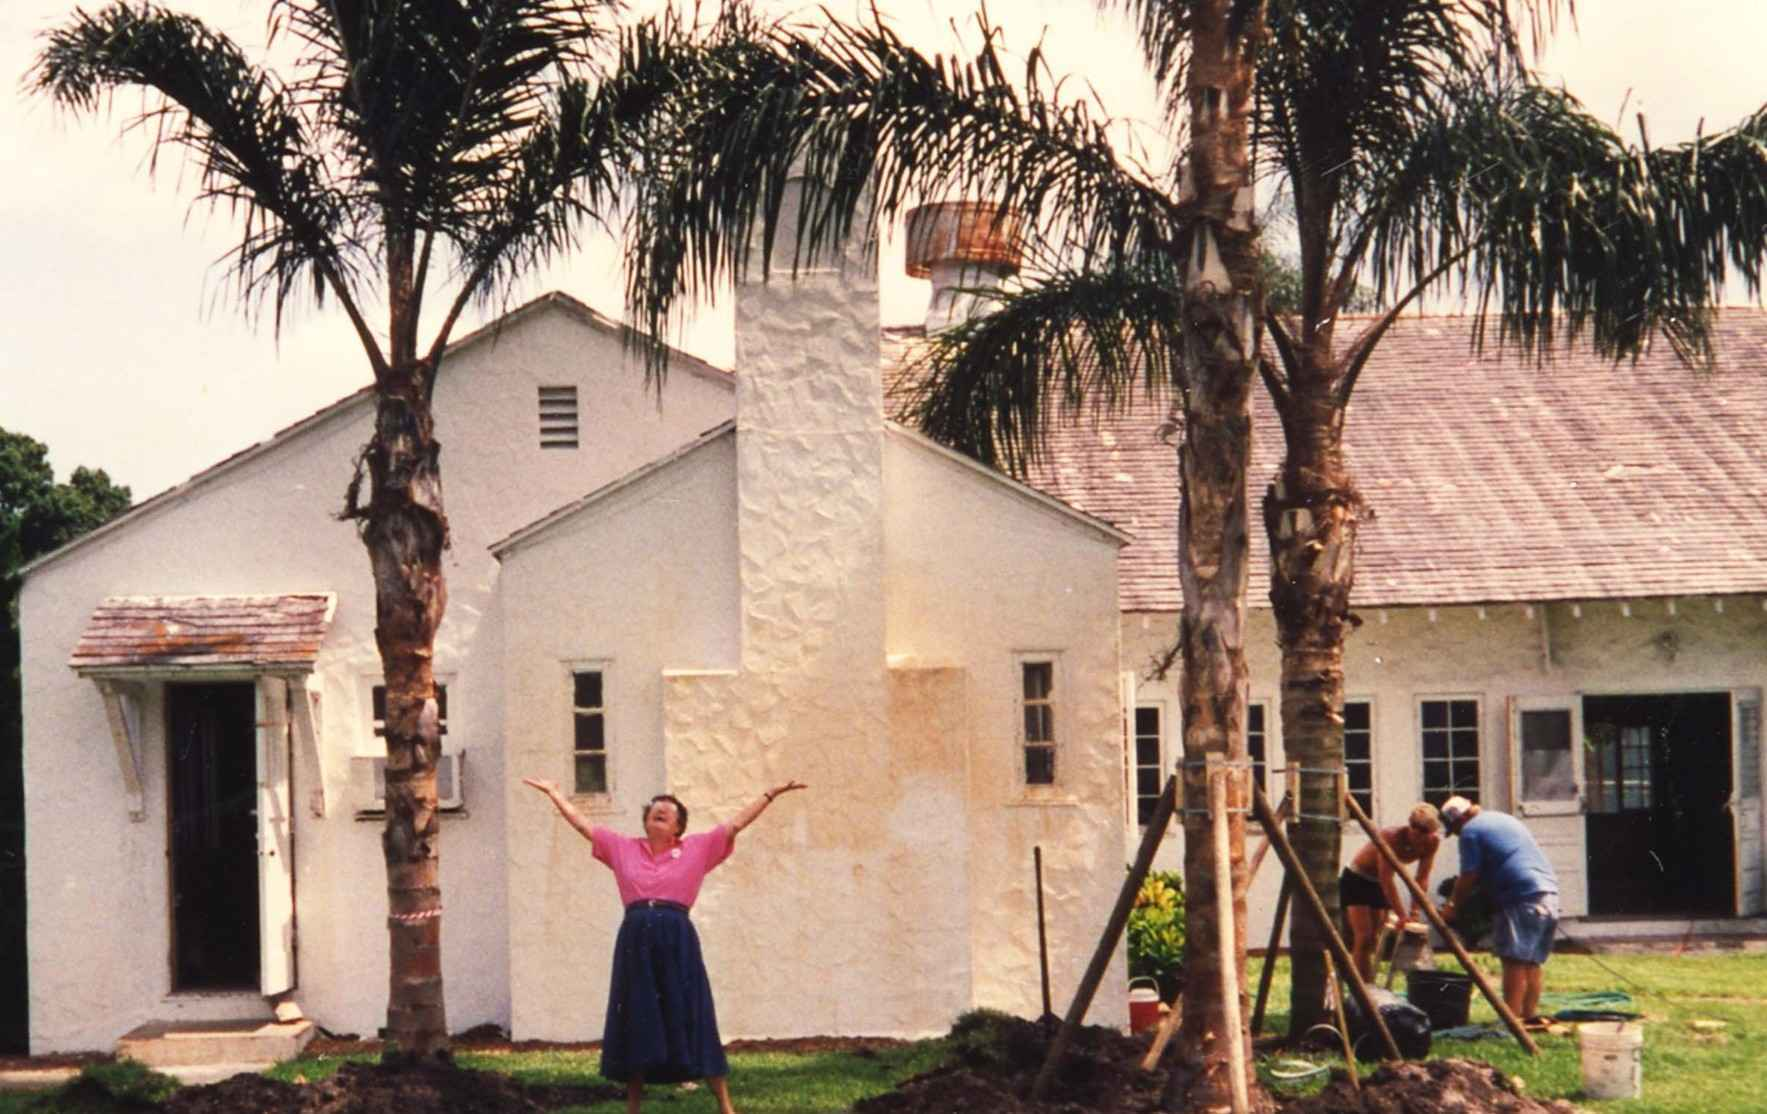 None of us could imagine Vero Beach without the Heritage Center. For 85 years, our stories, our memories, and our lives have been rooted in this special place. image